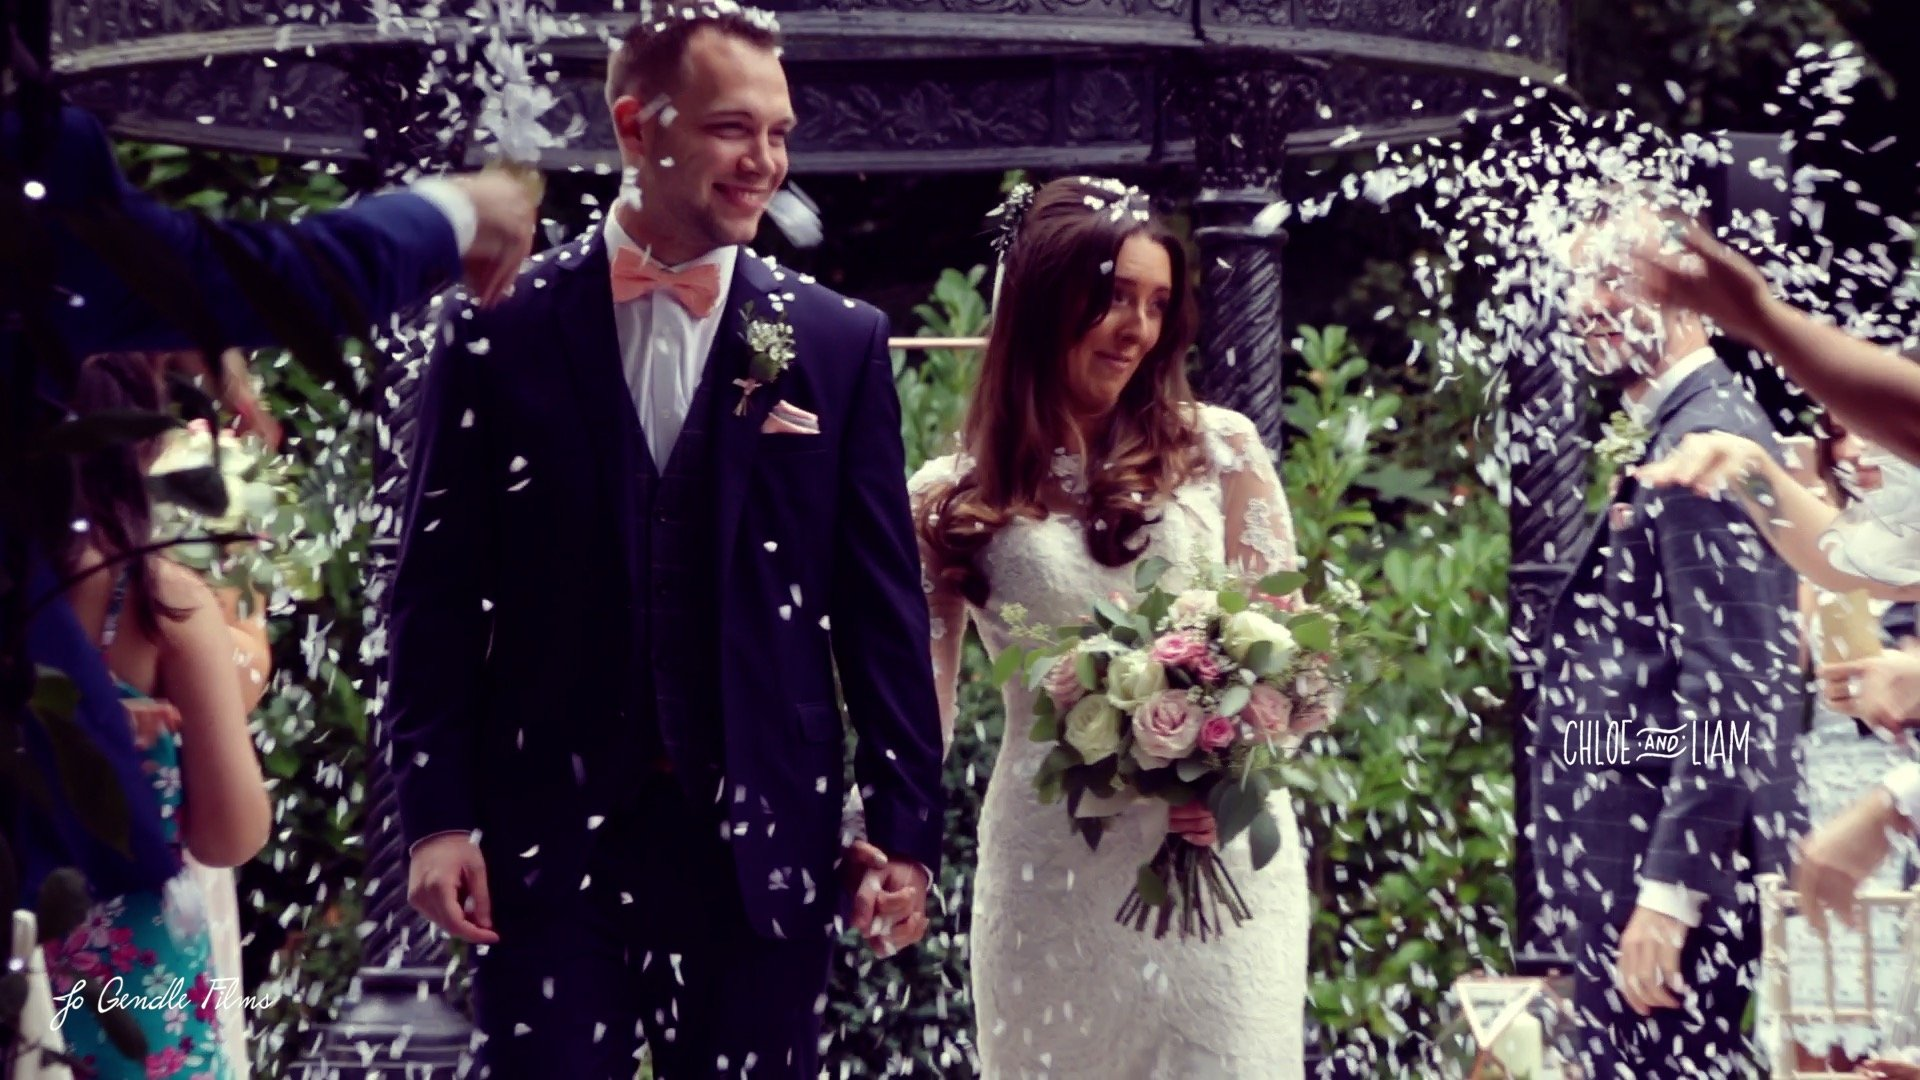 statham lodge wedding confetti